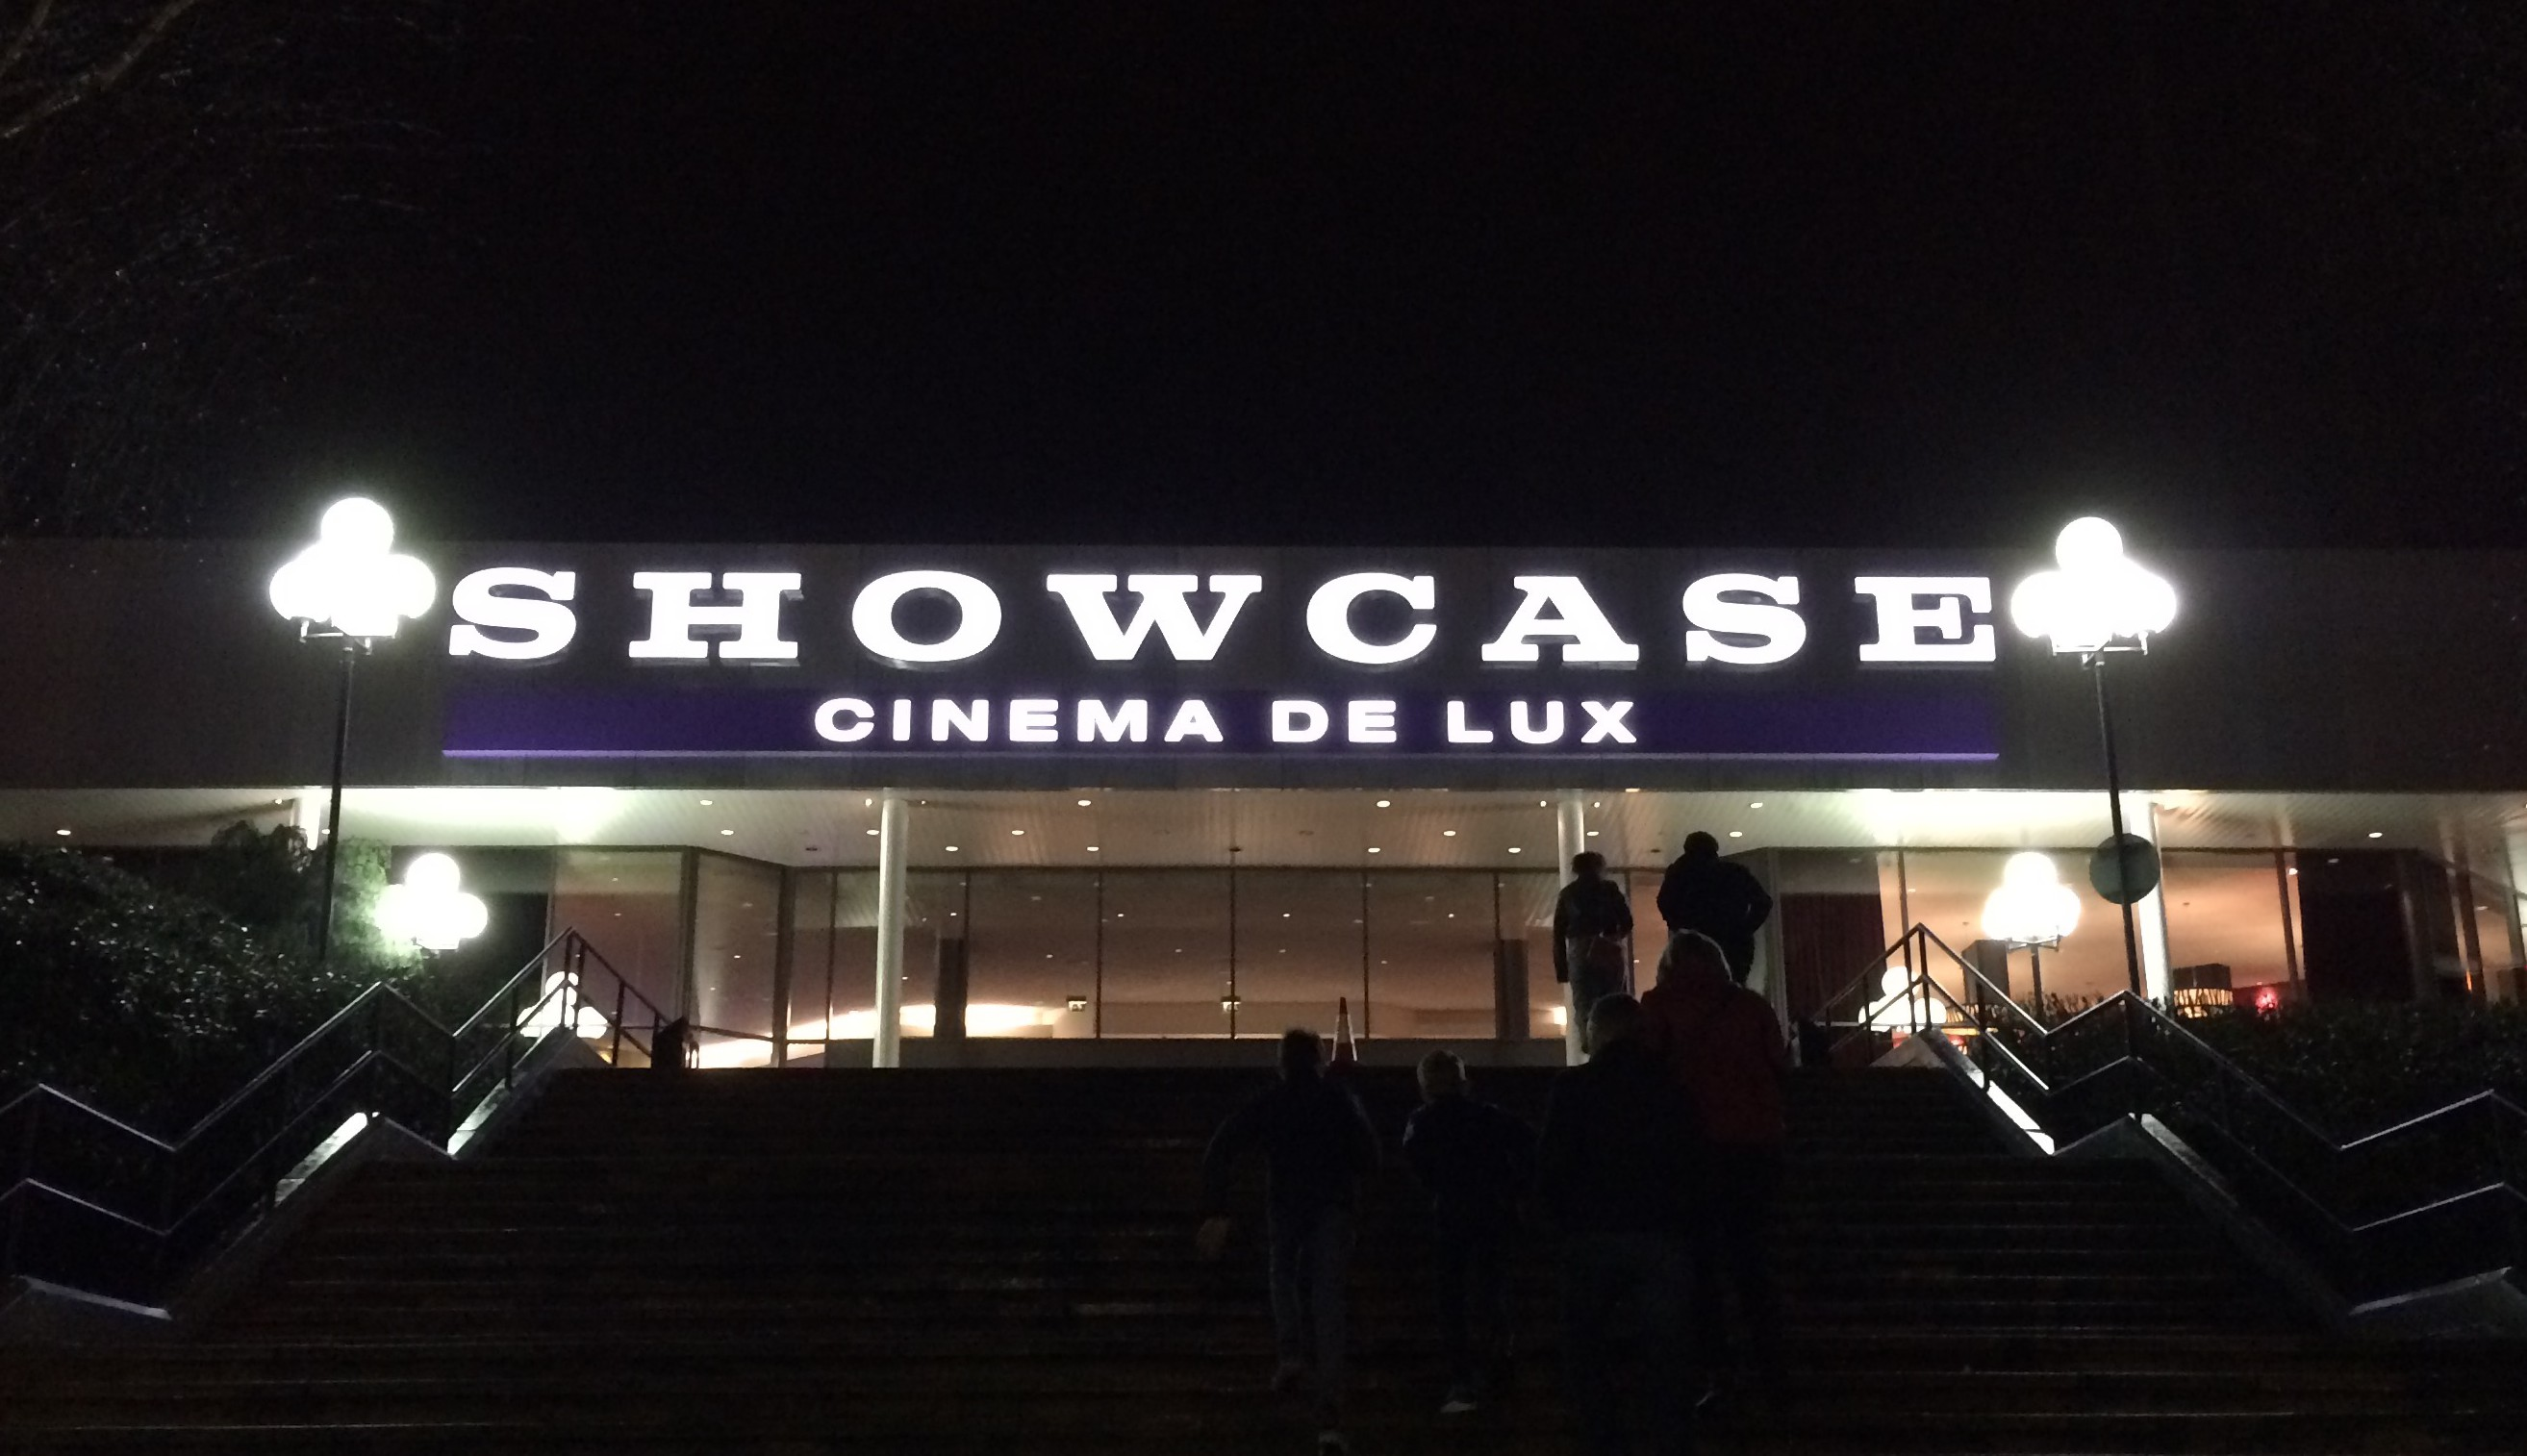 Showcase cinema de lux